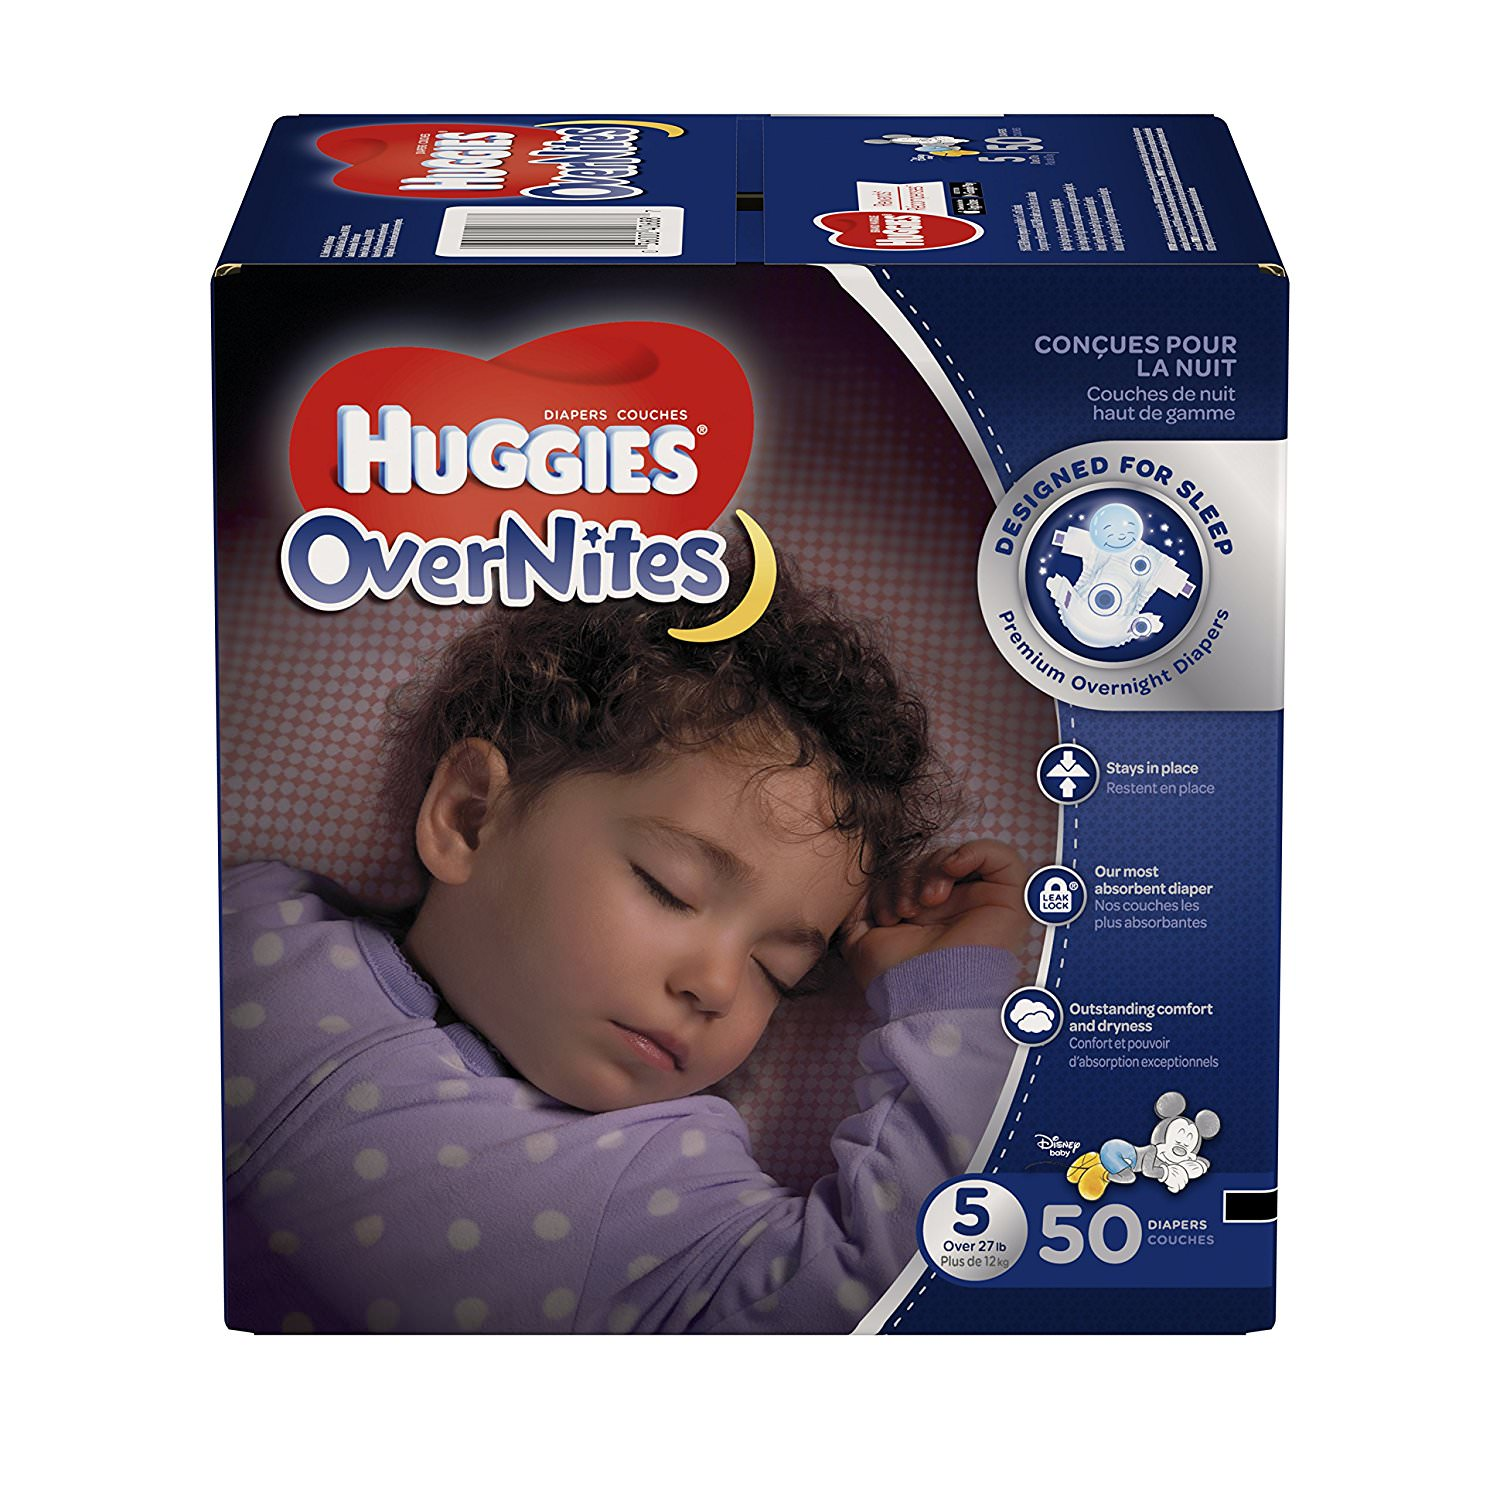 HUGGIES OverNites Diapers, Size 5 for over 27 lbs., Pack of 50 Overnight Baby Diapers